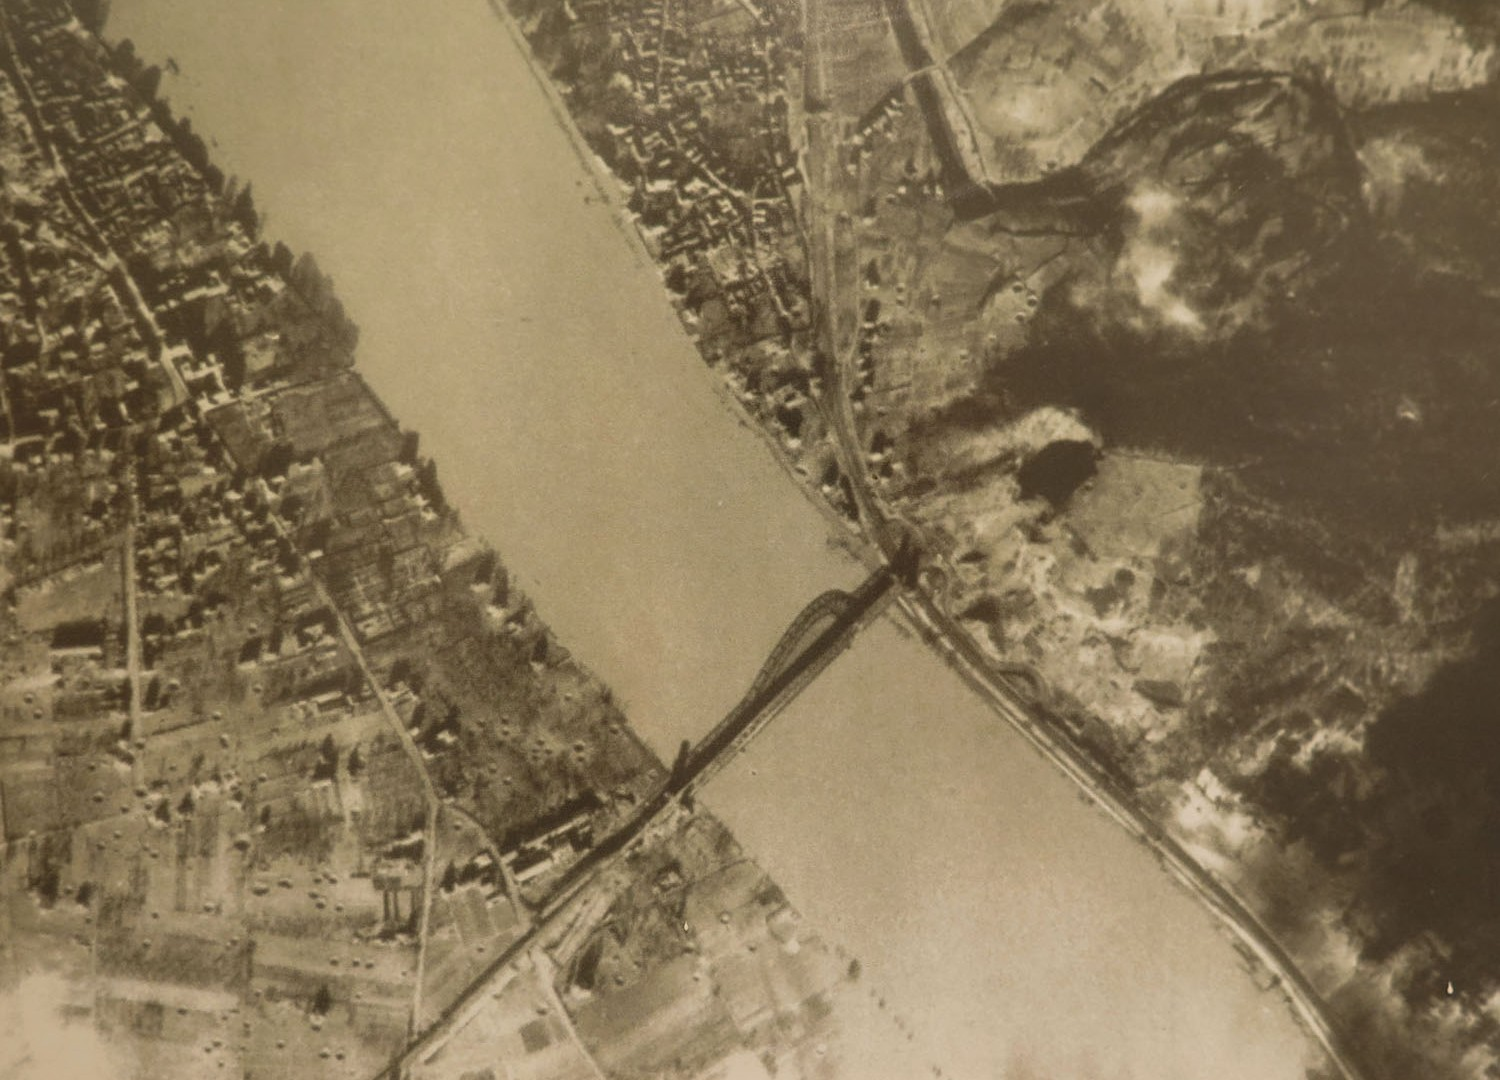 Germany-Bridge-At-Remagen-Peace-Museum-Aerial-Reconnaissance-Photo